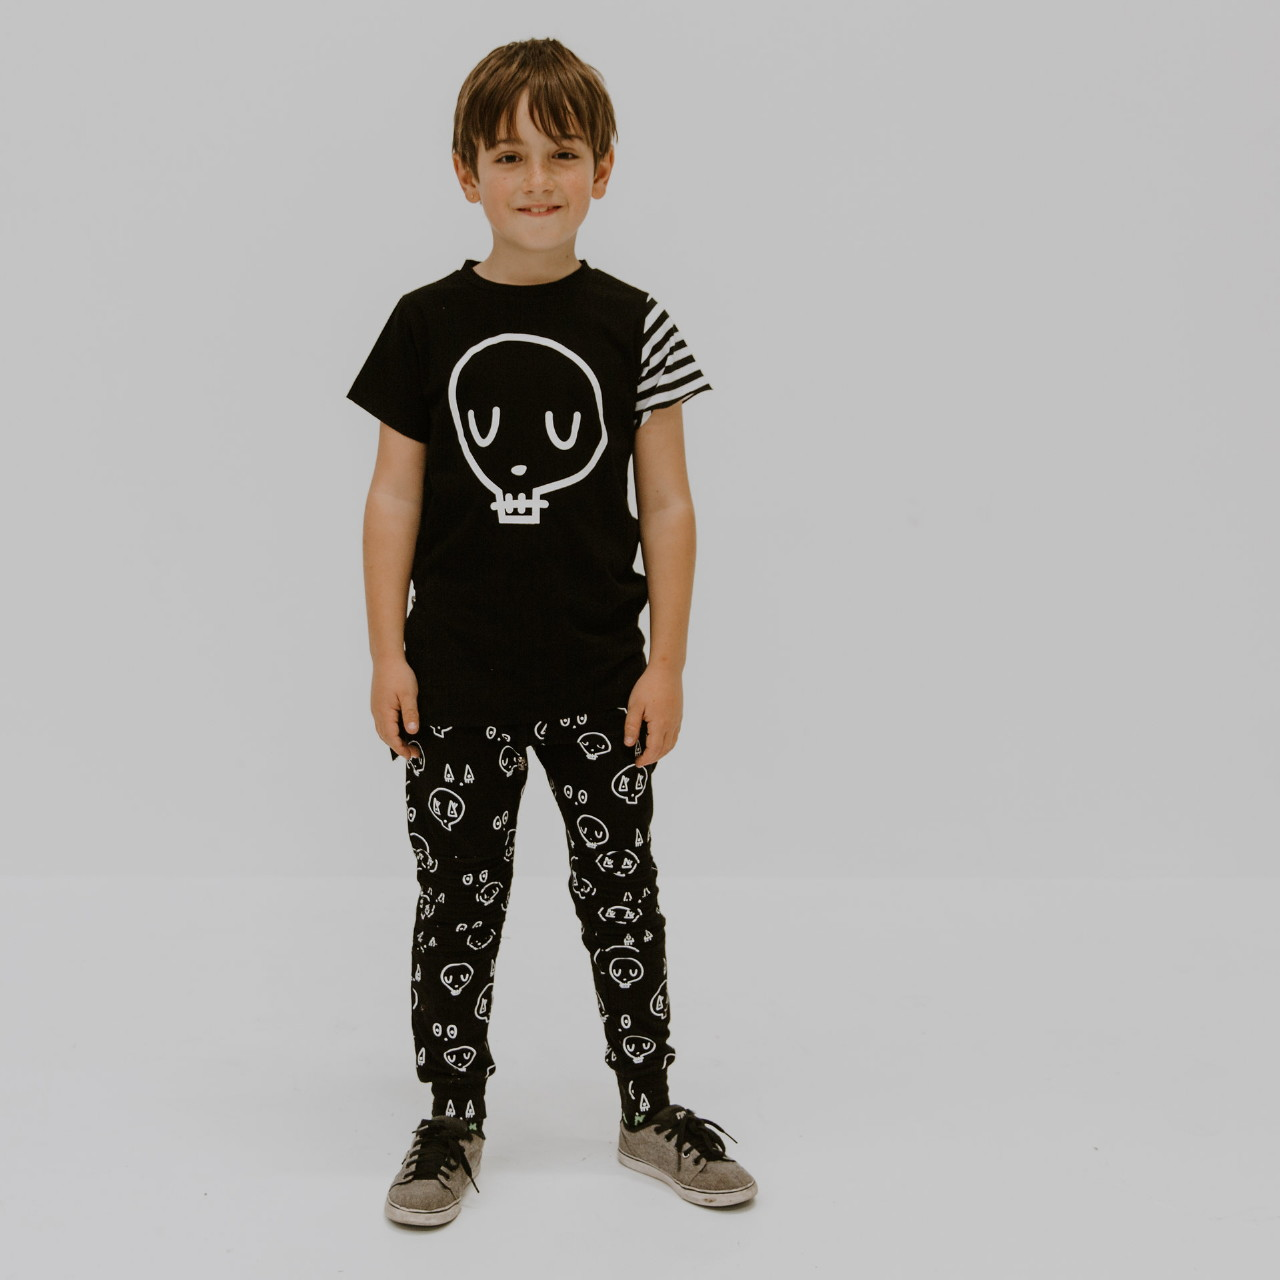 Rad Skull Tee by Punk Baby